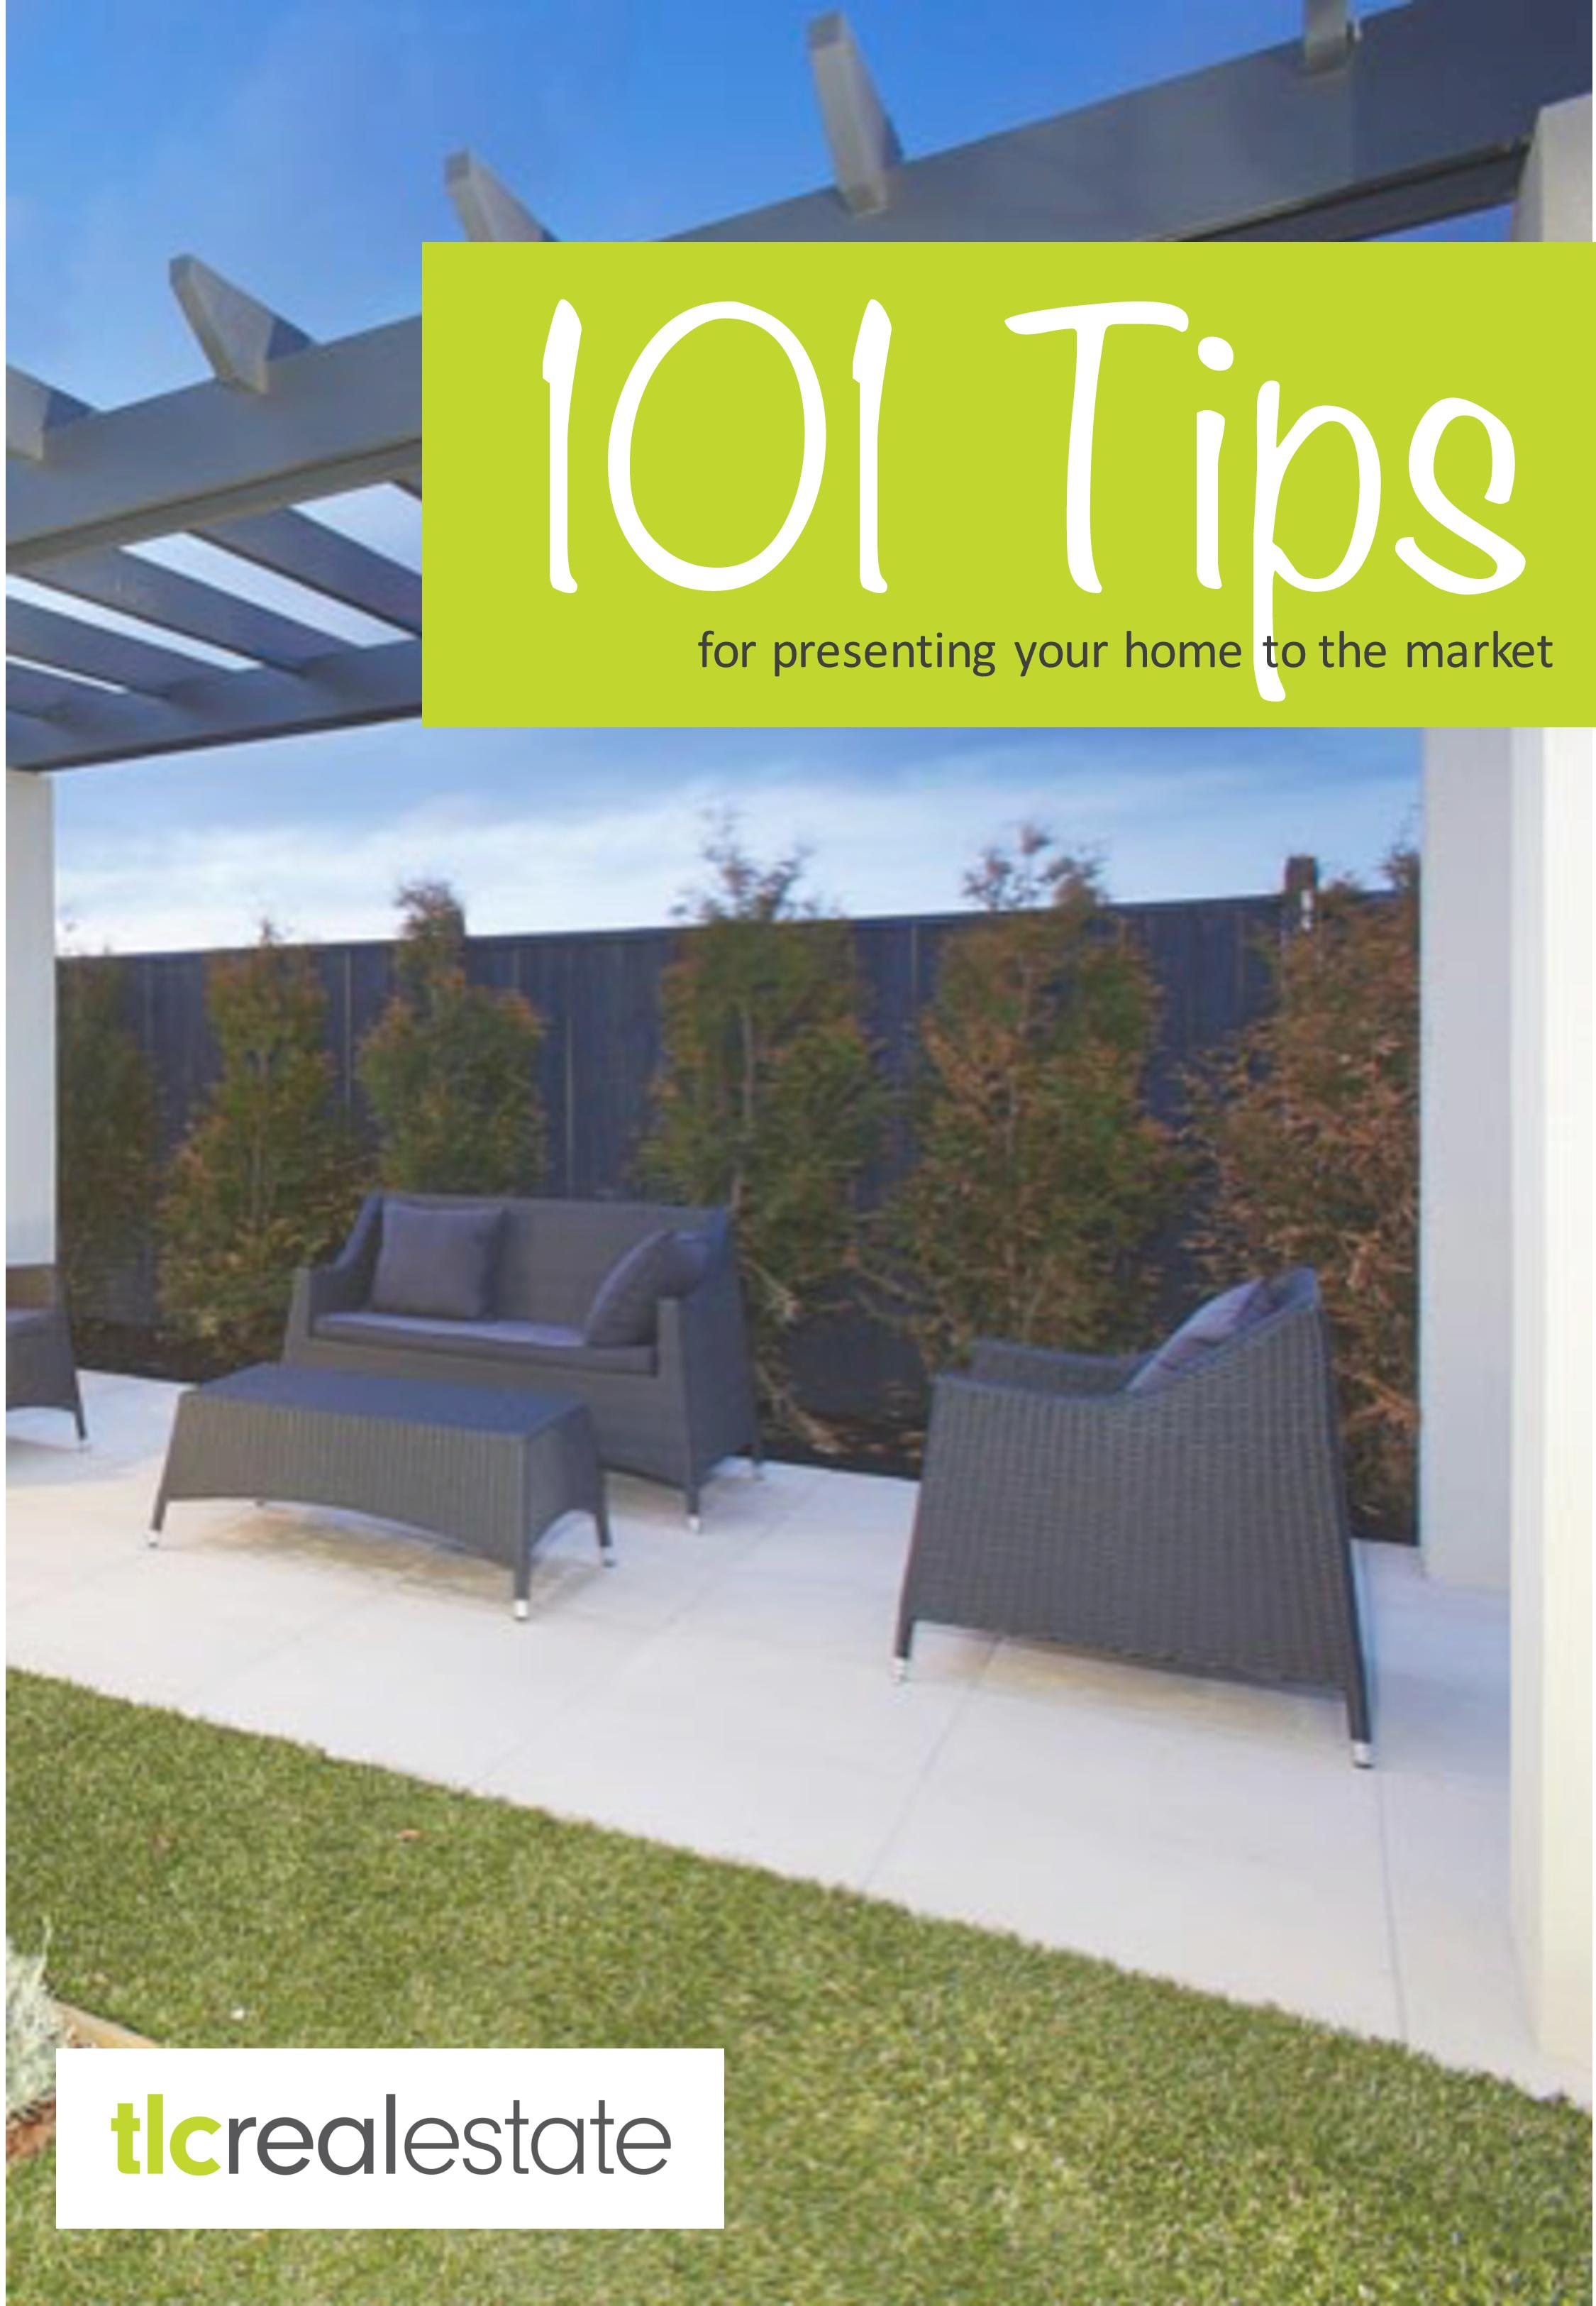 101 Tips from TLC Real Estate